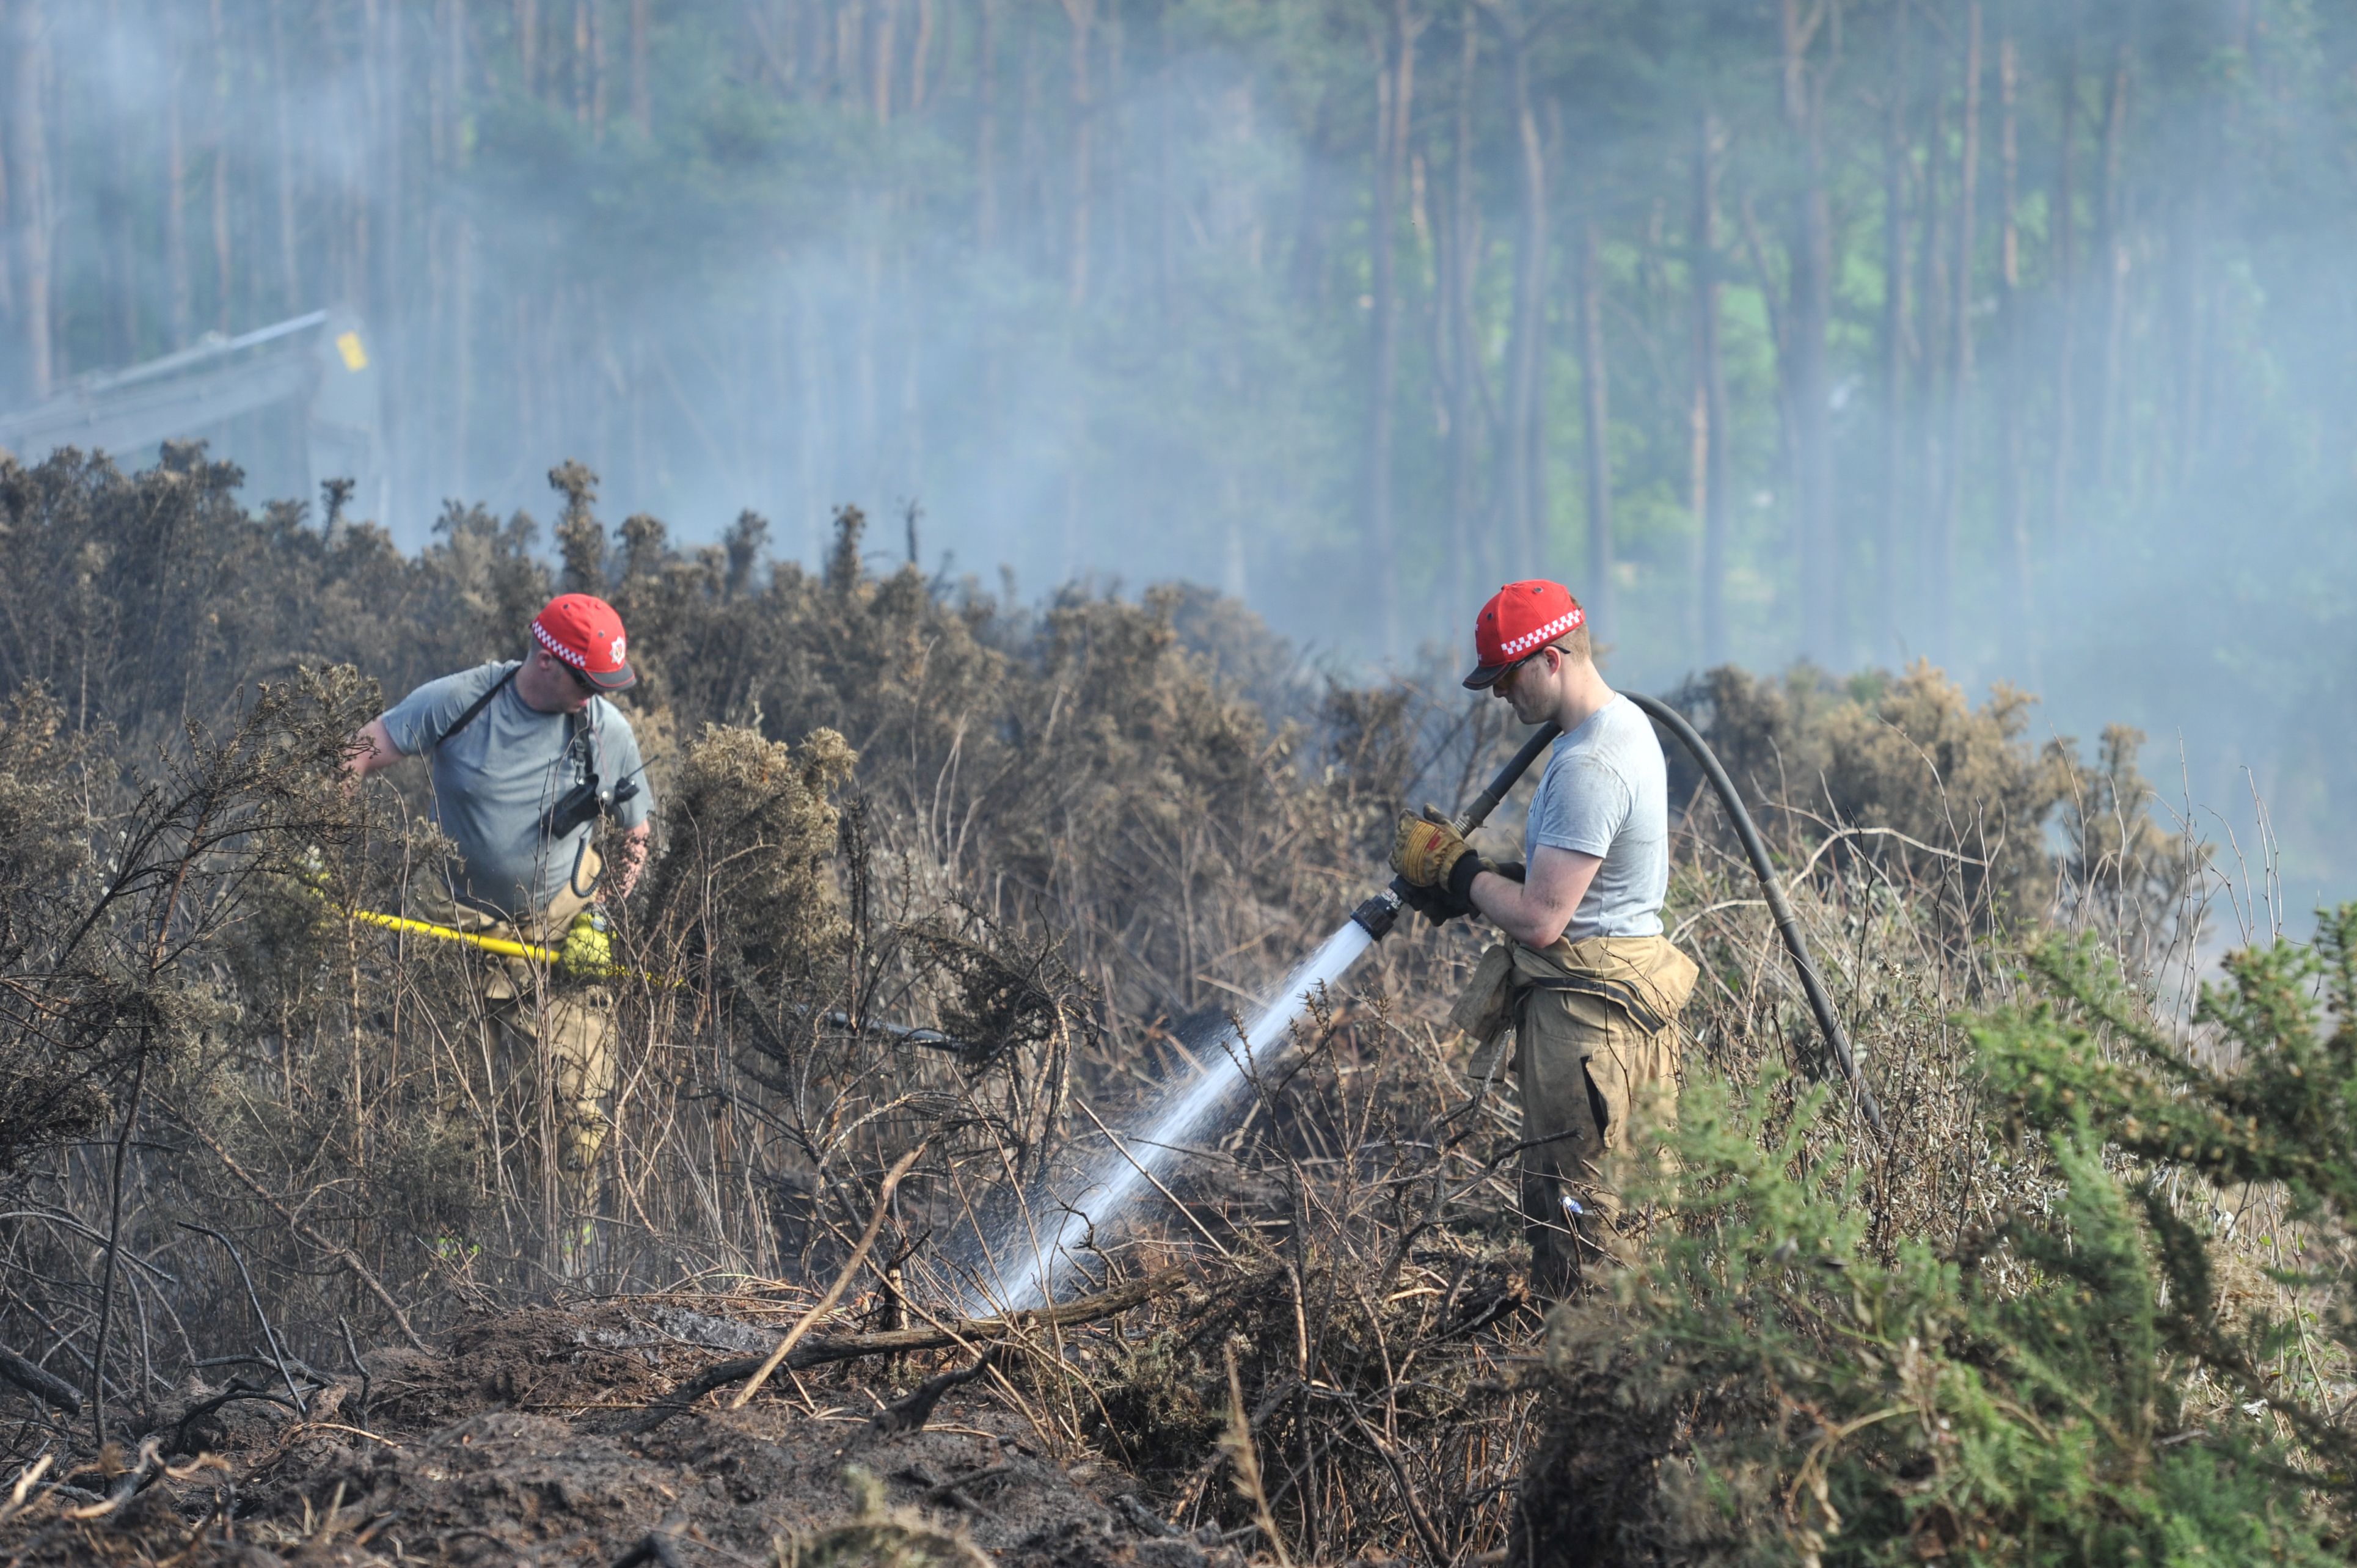 Firefighters tackle a gorse blaze near Hopeman in July 2018. Picture by Jason Hedges.